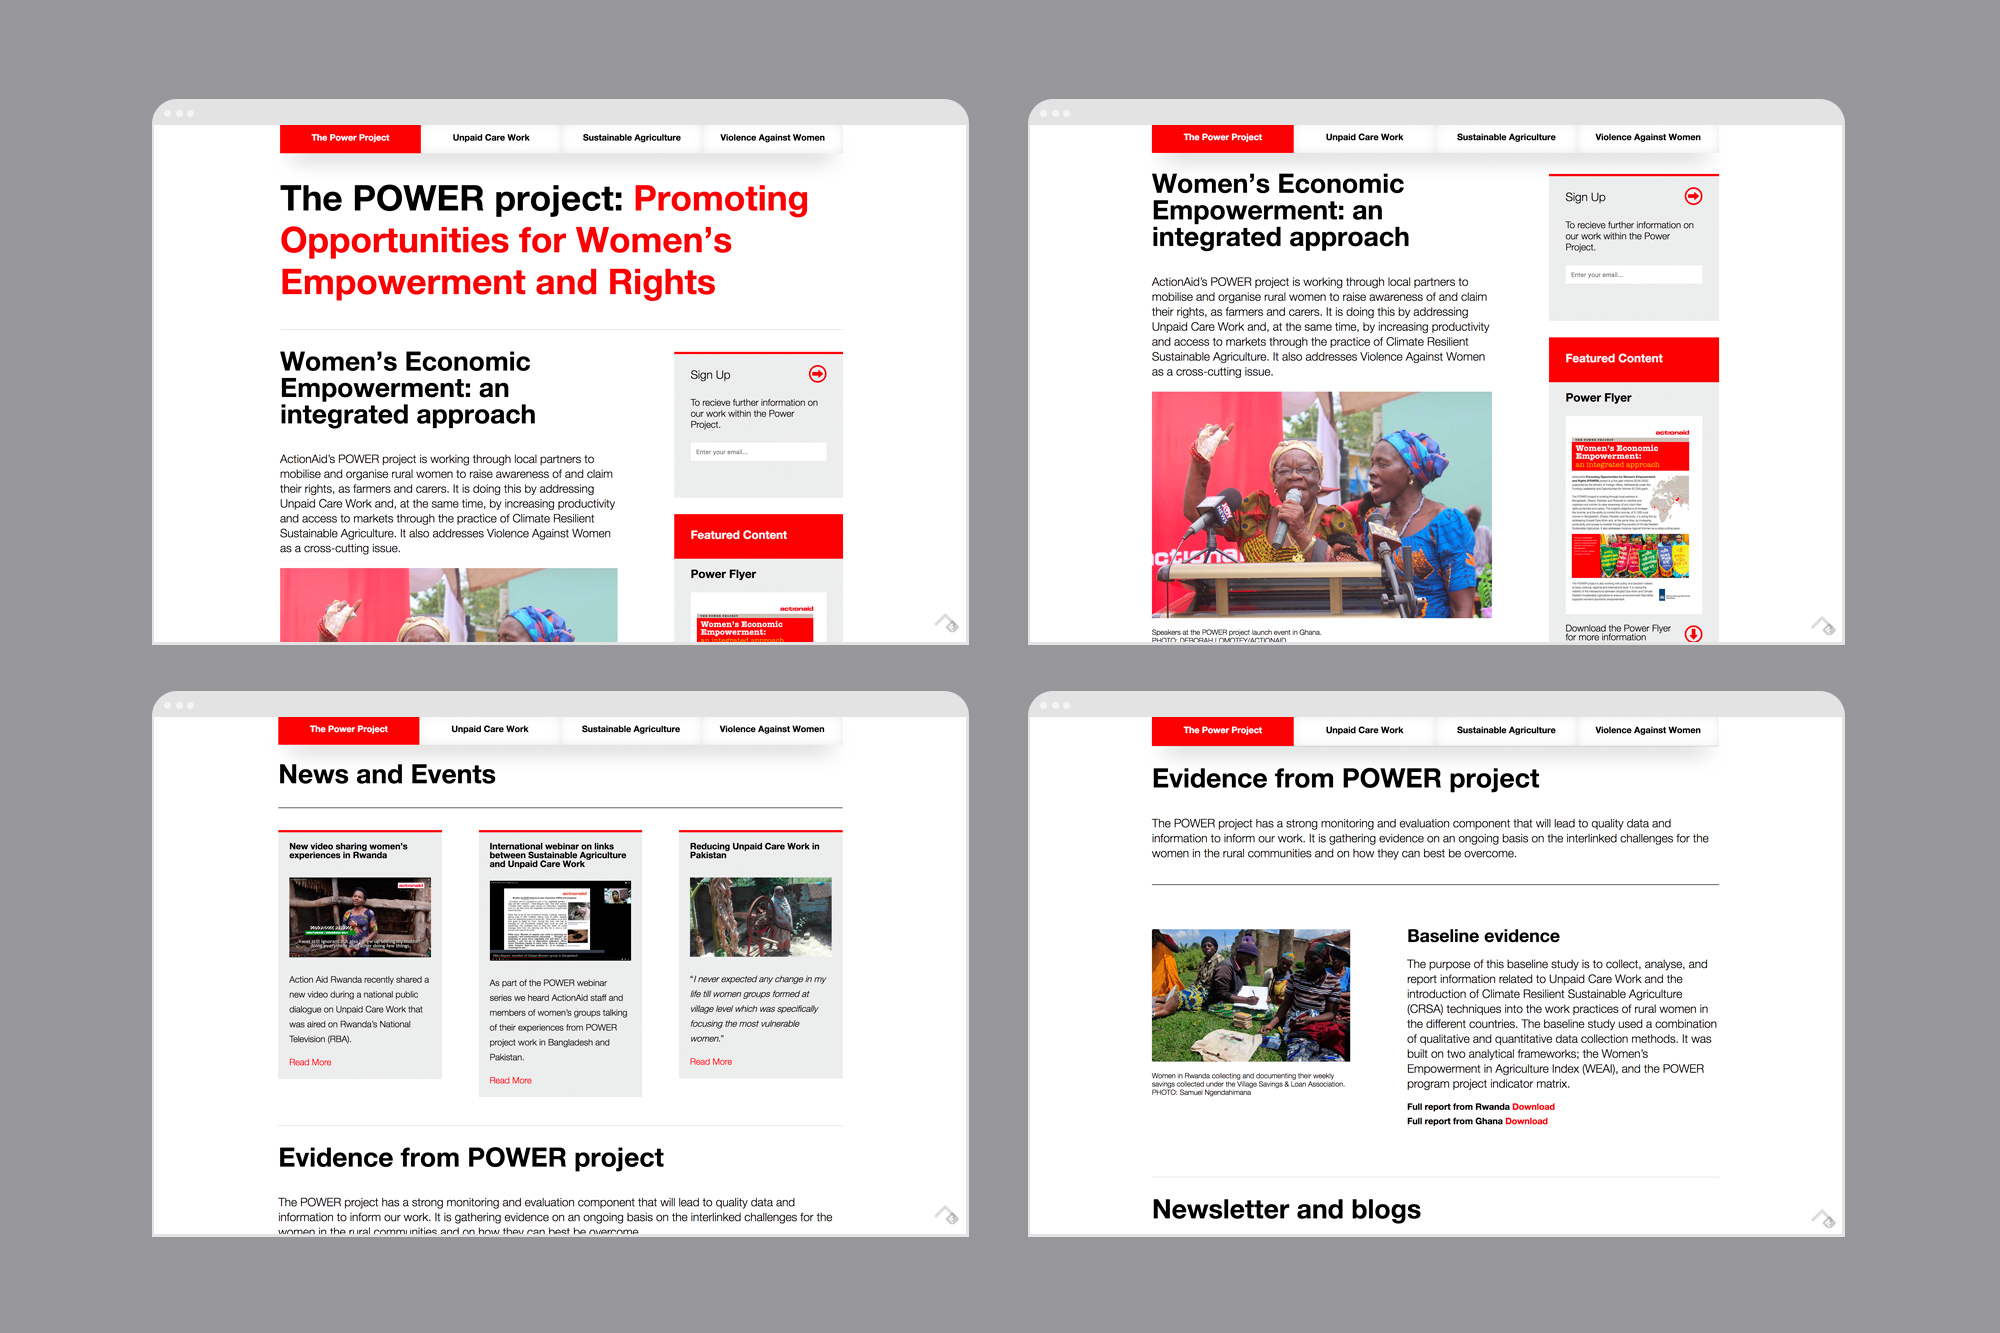 gpj-actionaid-power-project-v3